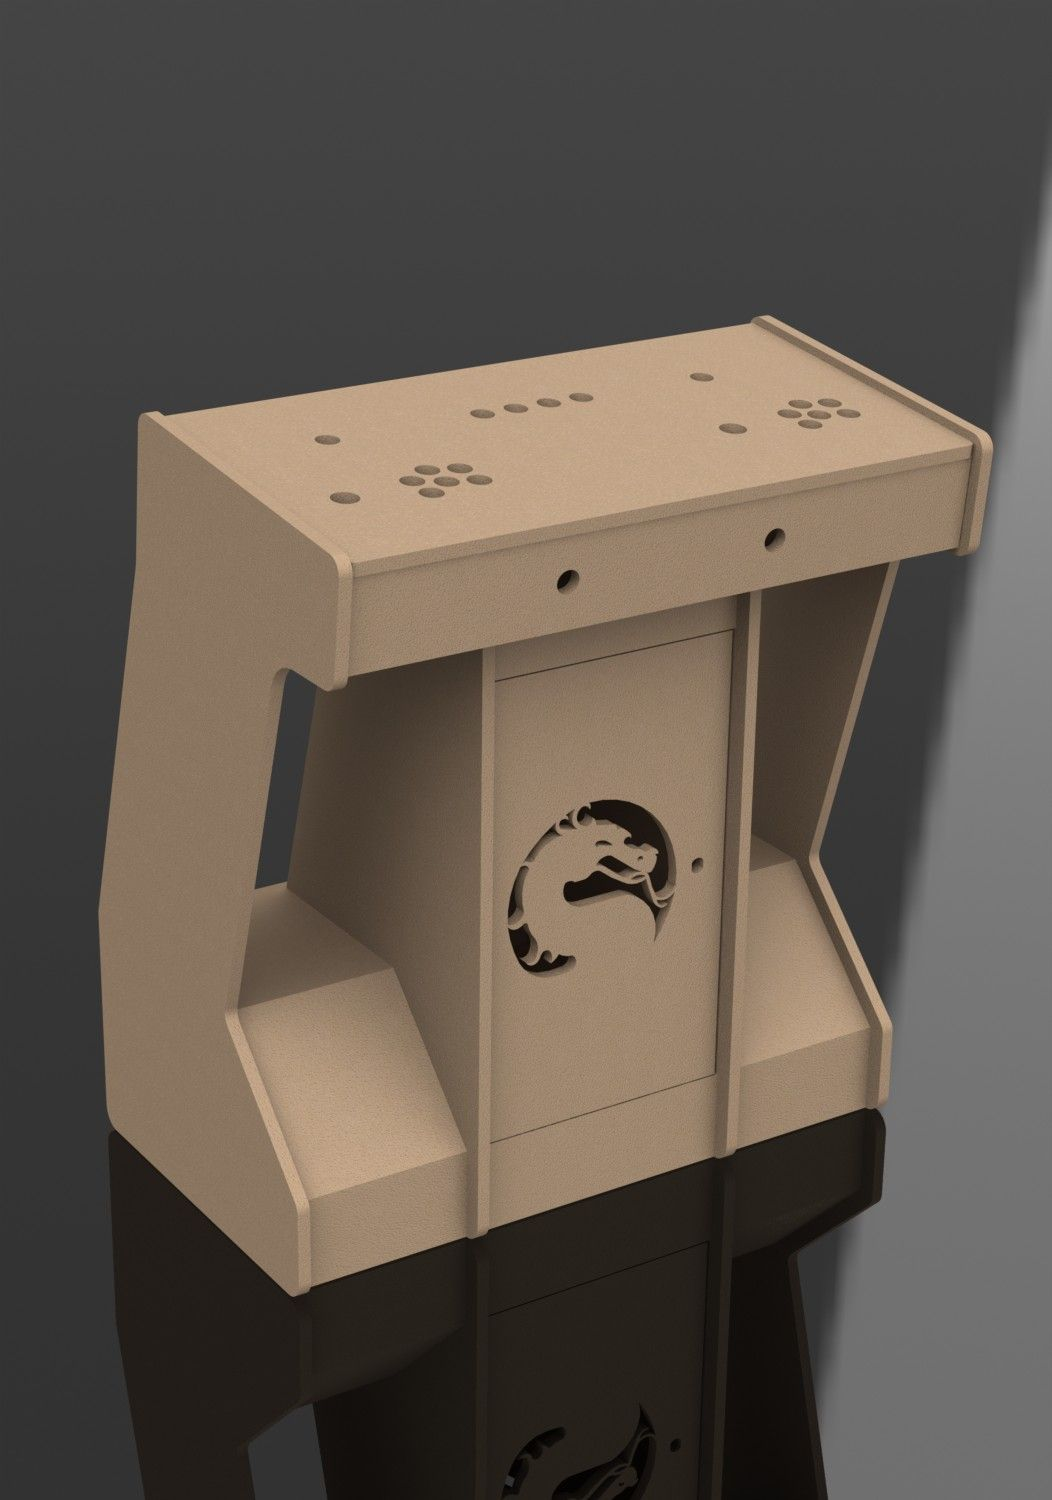 This 2 Player Pedstal Arcade Cabinet Designed By